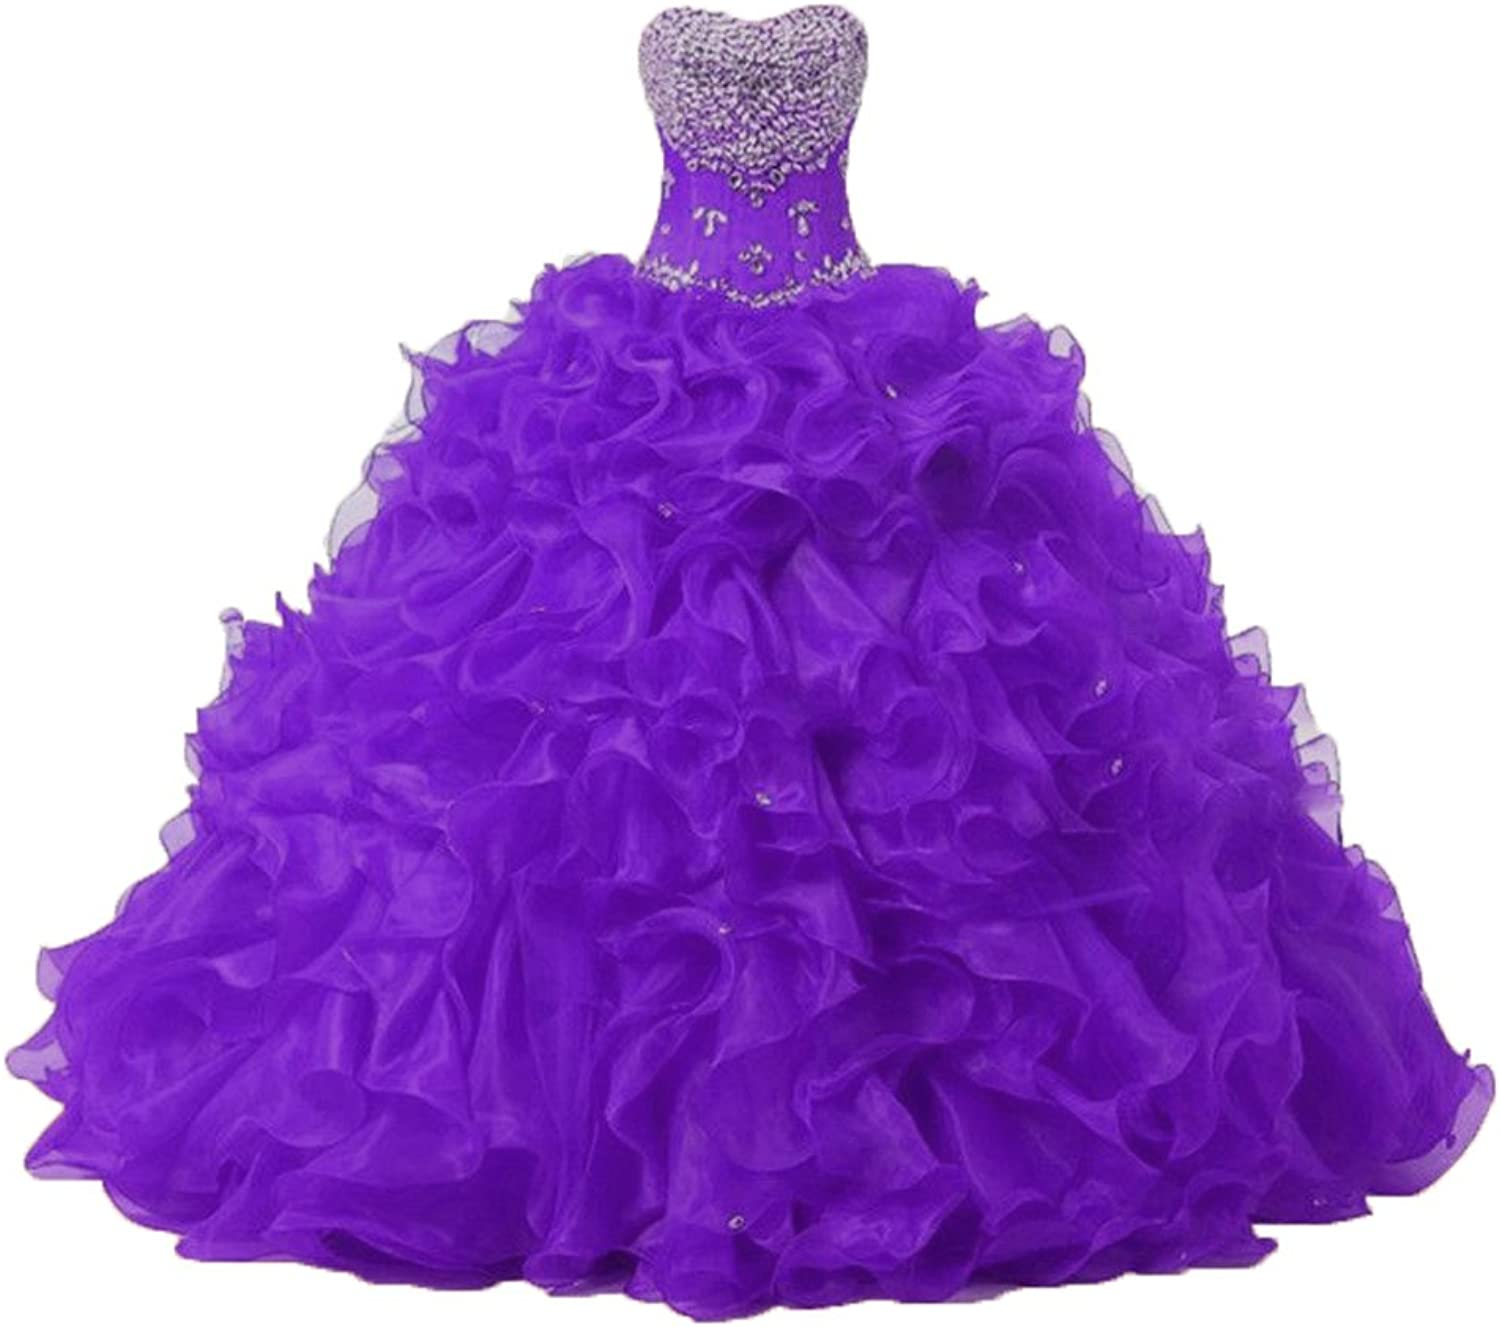 Diandiai Women's Sweetheart Ball Gown Organza Quinceanera Dresses with Beads